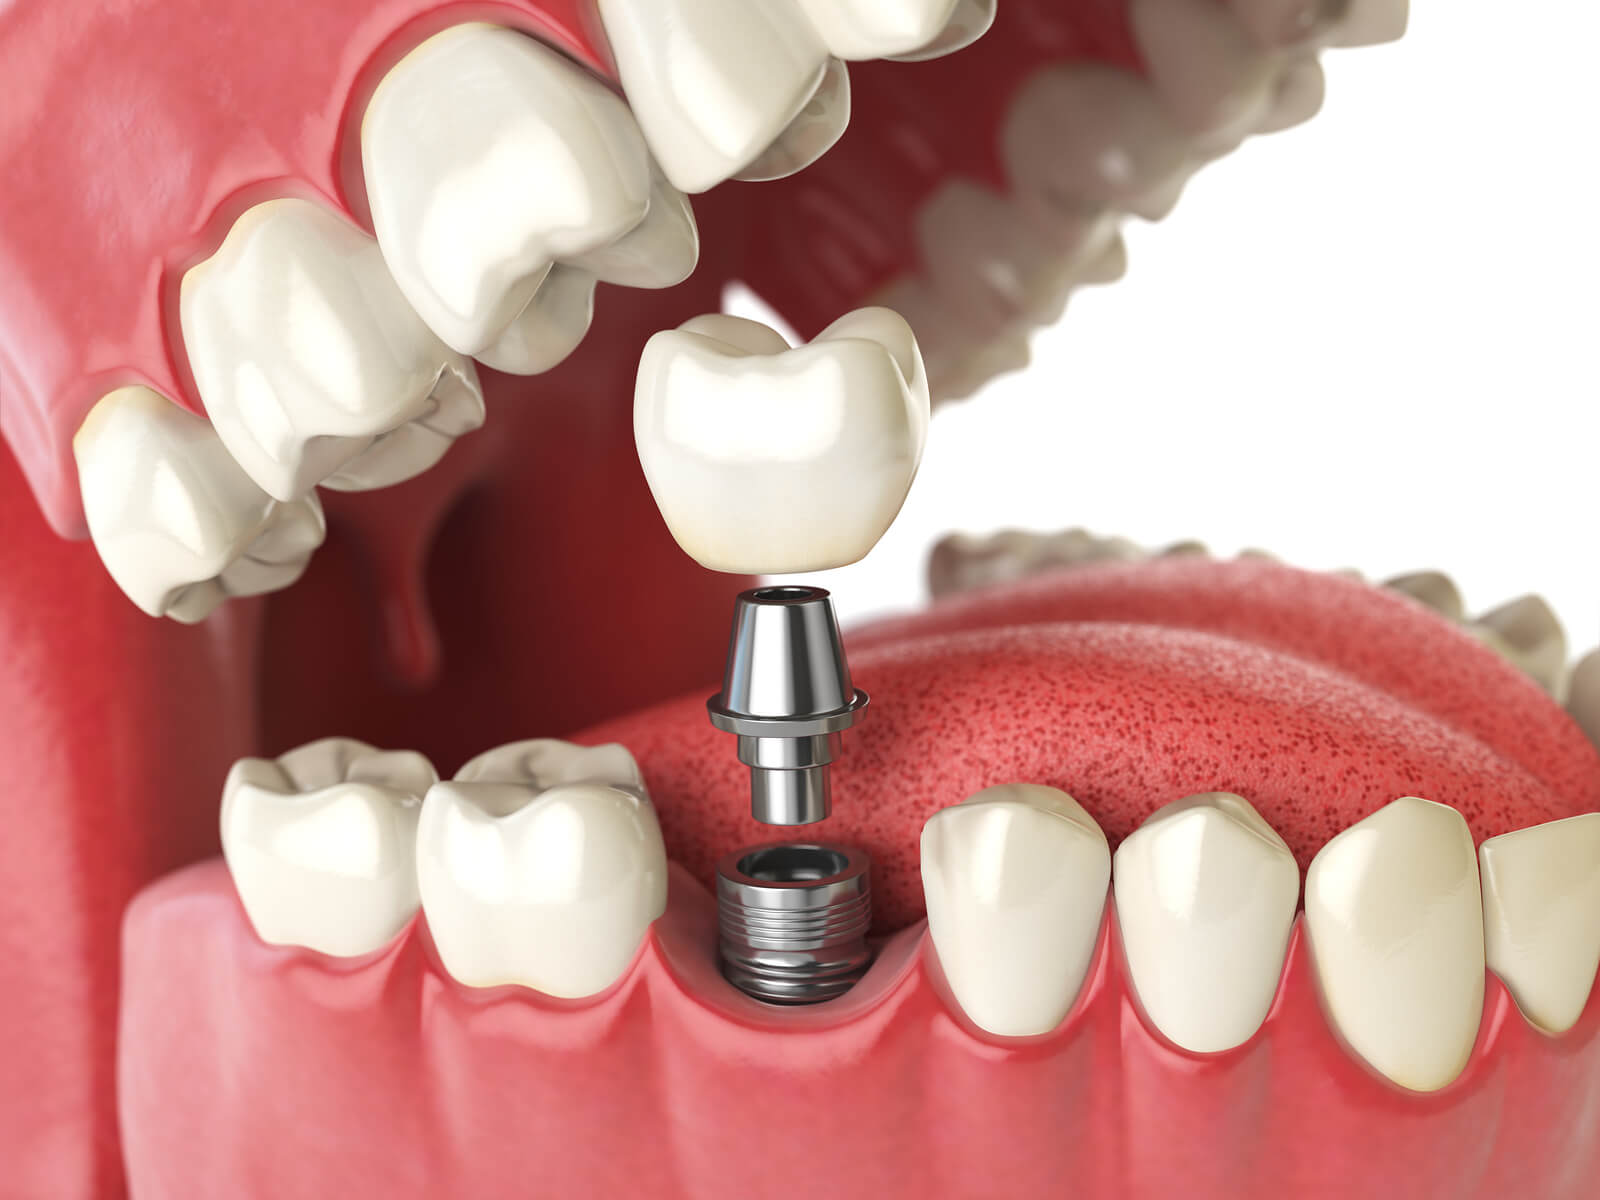 Which is best: Tooth or implant?